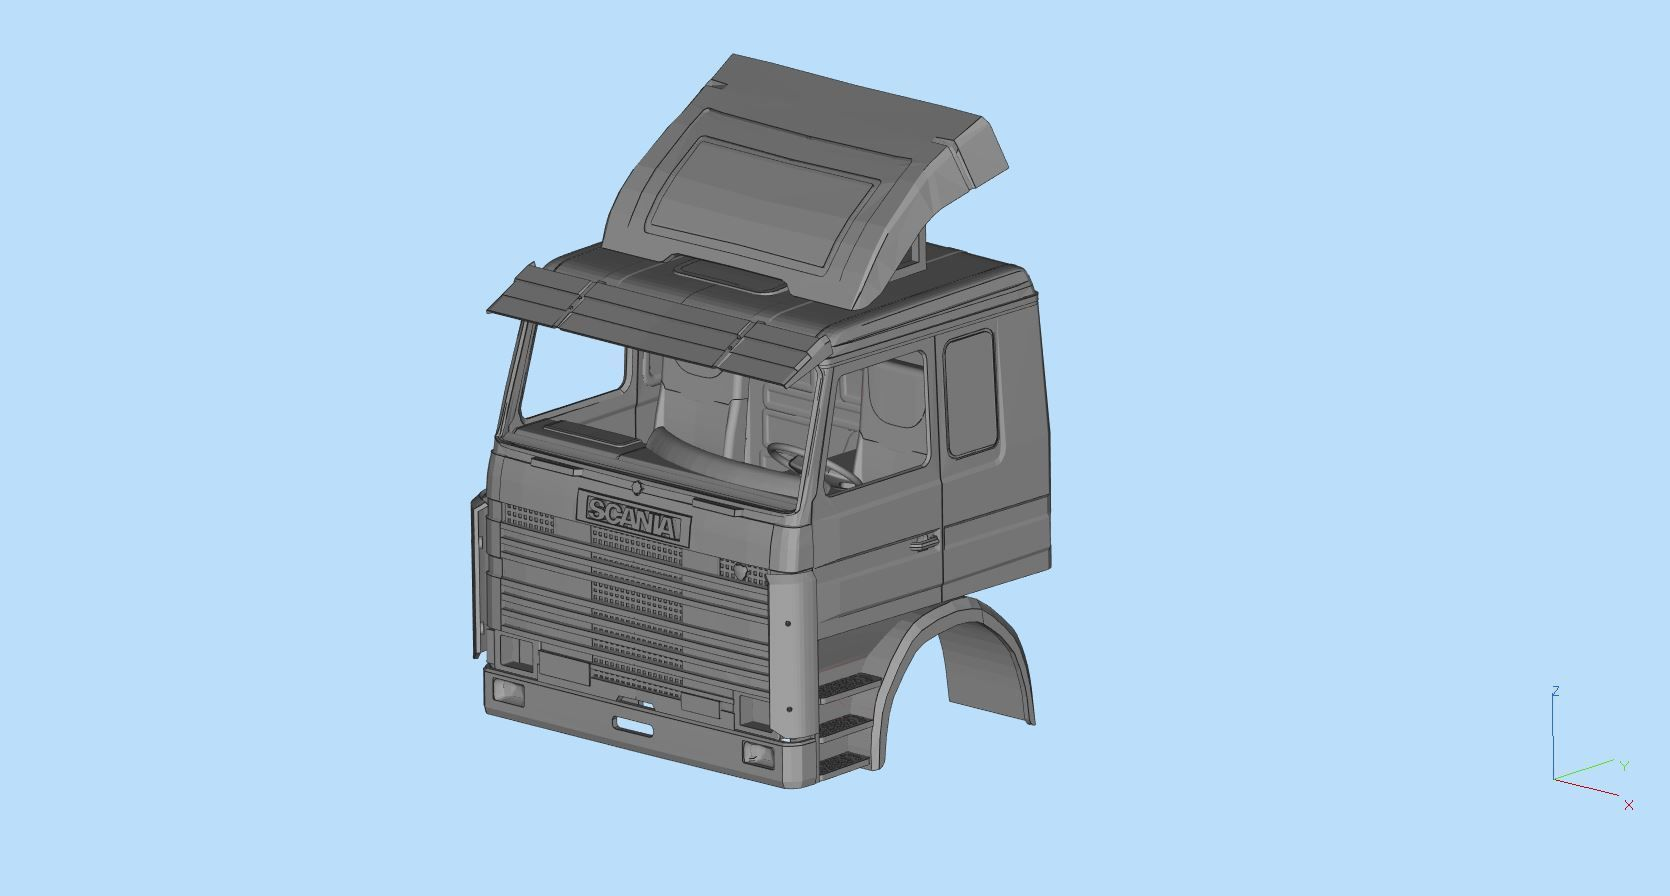 Scania 113m Cabin stl files for 3d printing rc car bodies